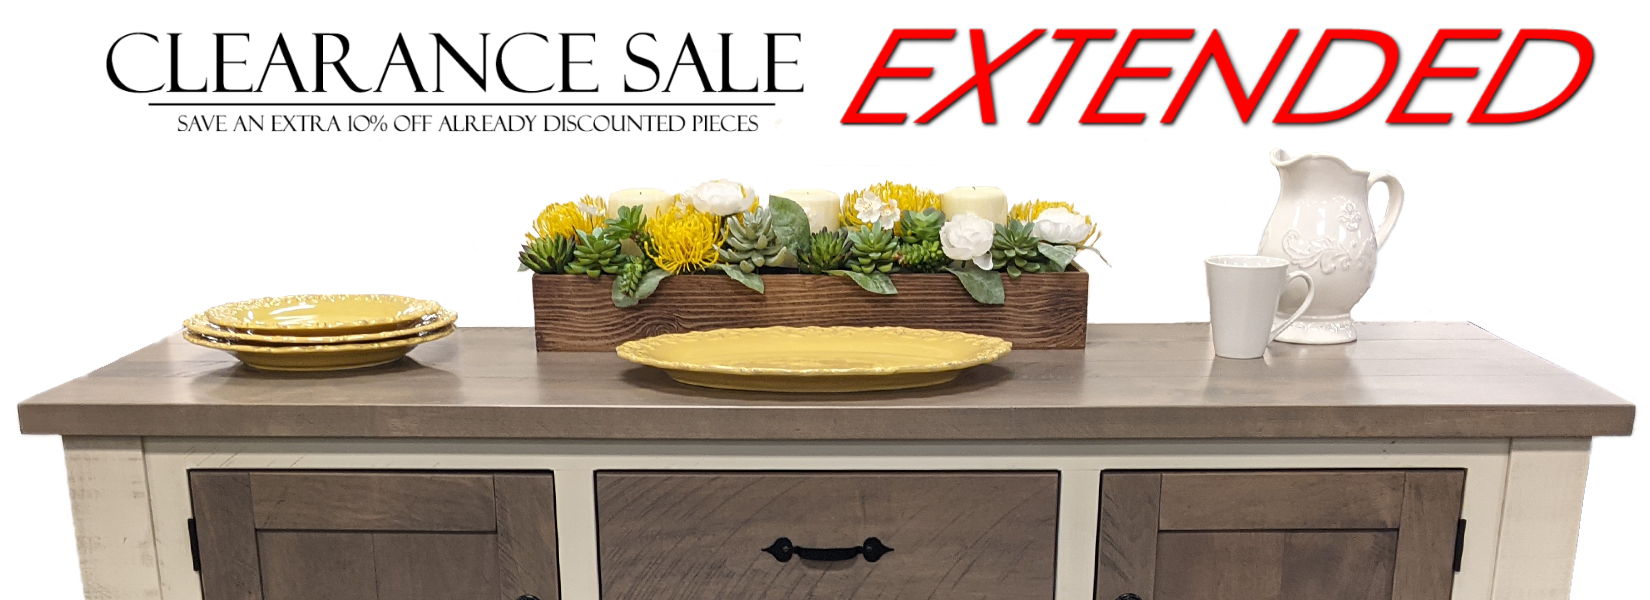 Extended Clearance Page Banner